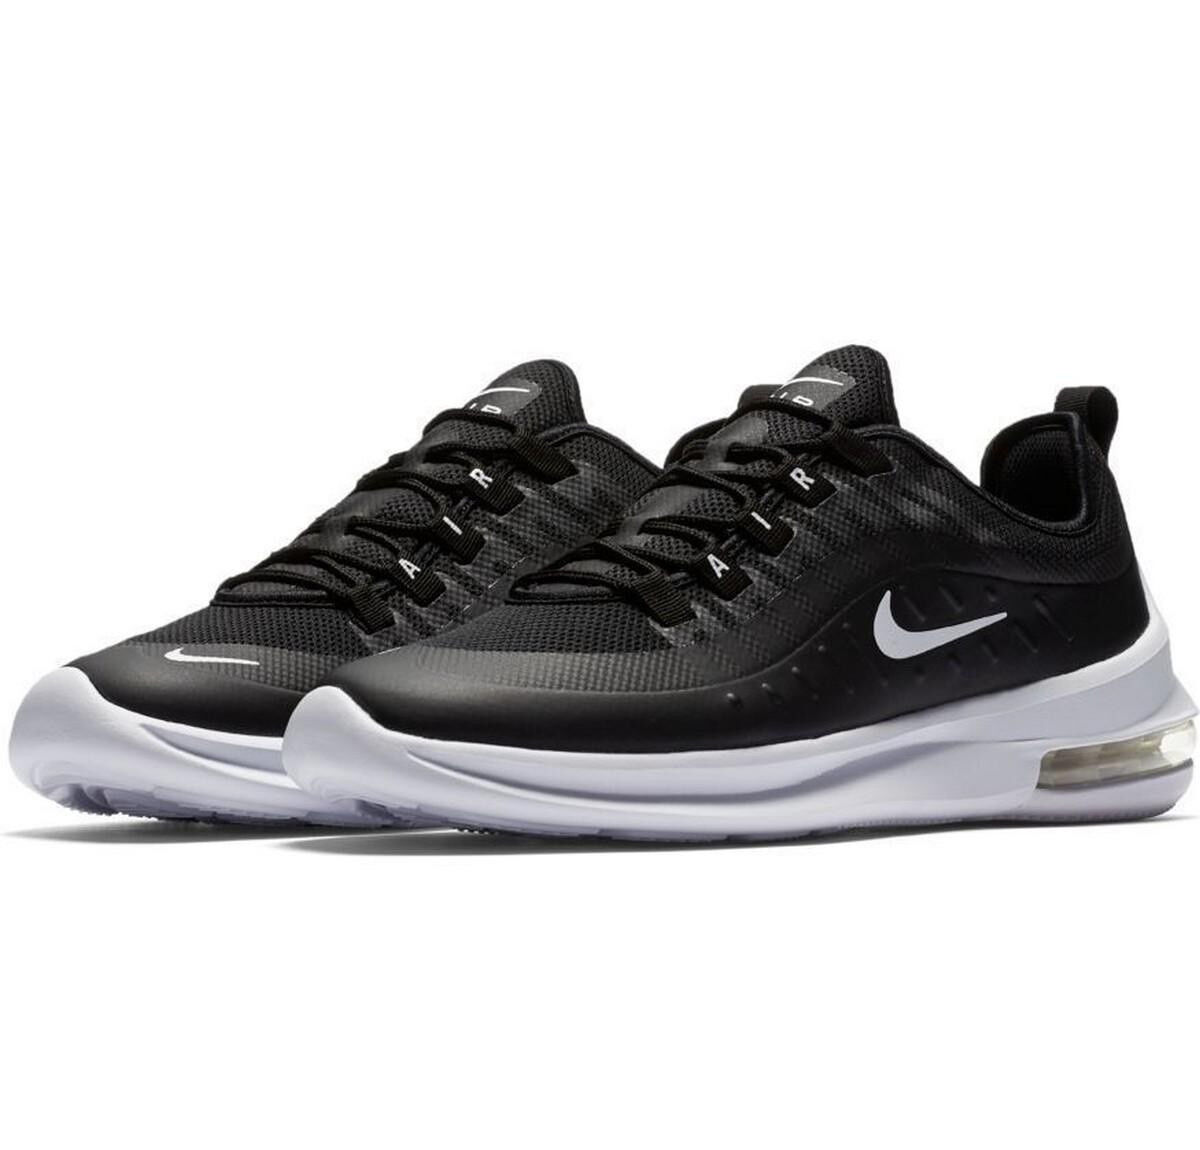 size 40 1cc2a c2748 Chaussures Nike Nike air Max Axis Taille 43 Aa2146-003 Noir ...